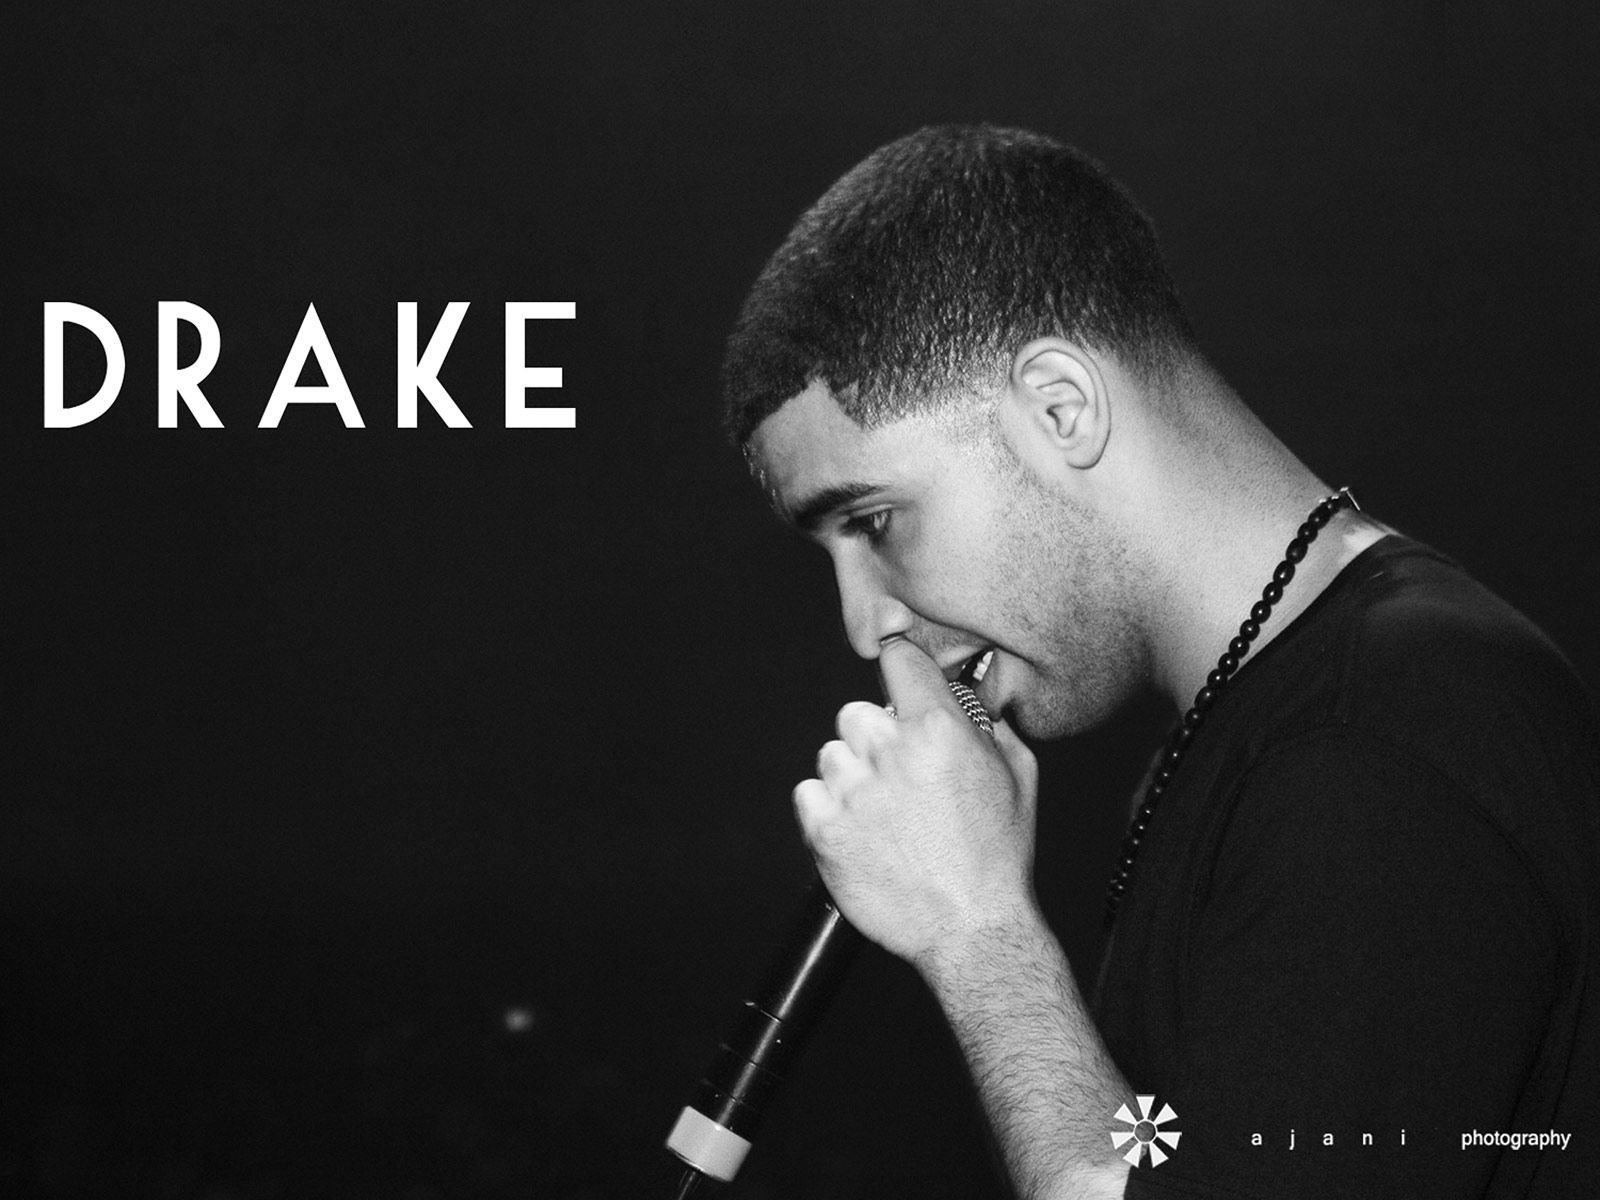 1600x1200 Drake Photos – Drake Wallpapers for PC & Mac, Tablet, Laptop, Mobile